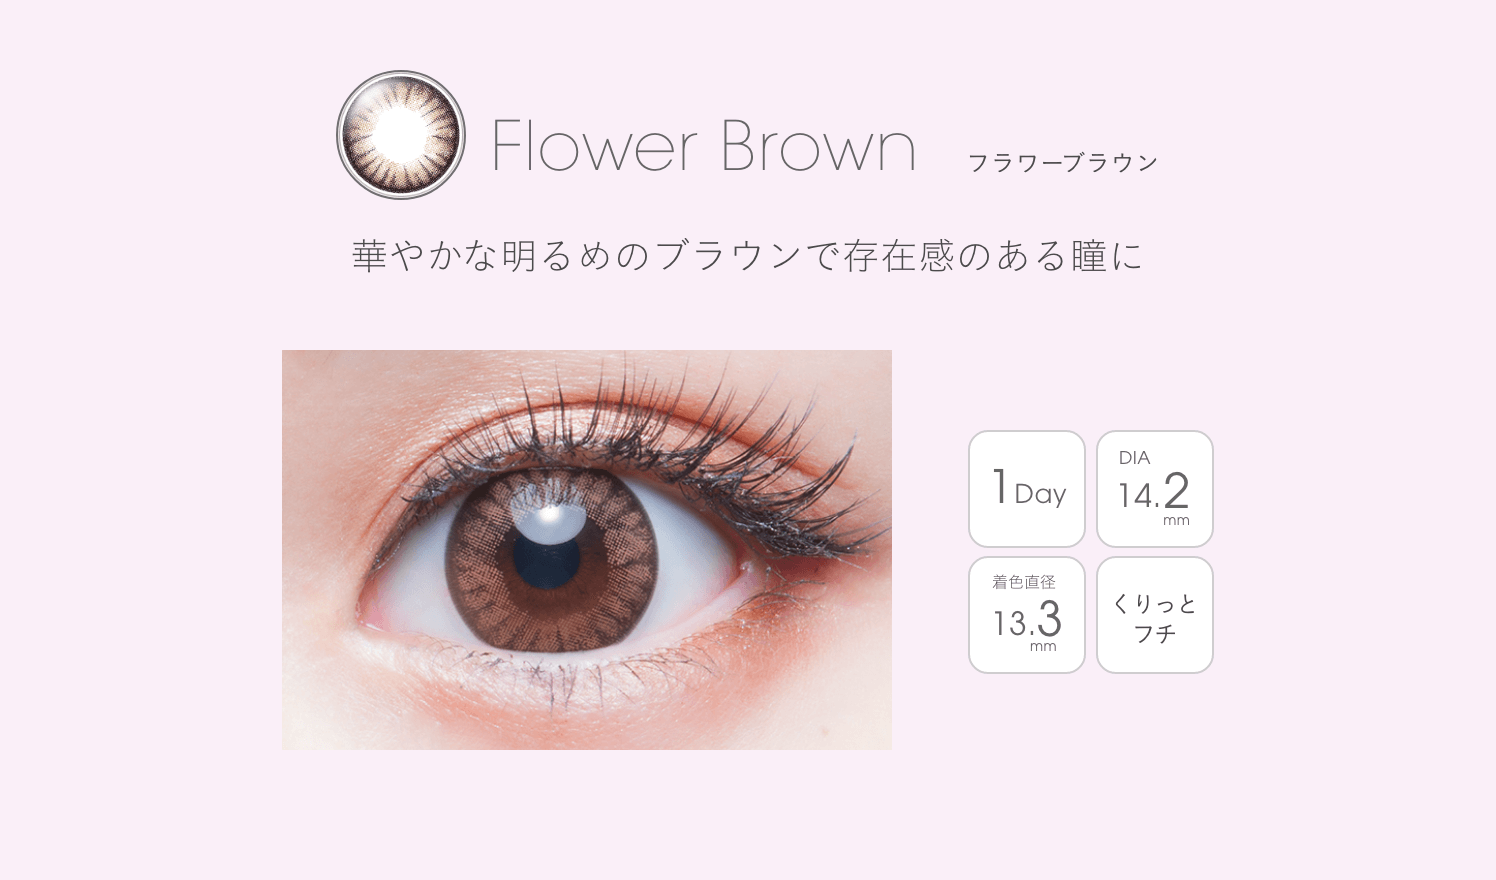 Flower Brown